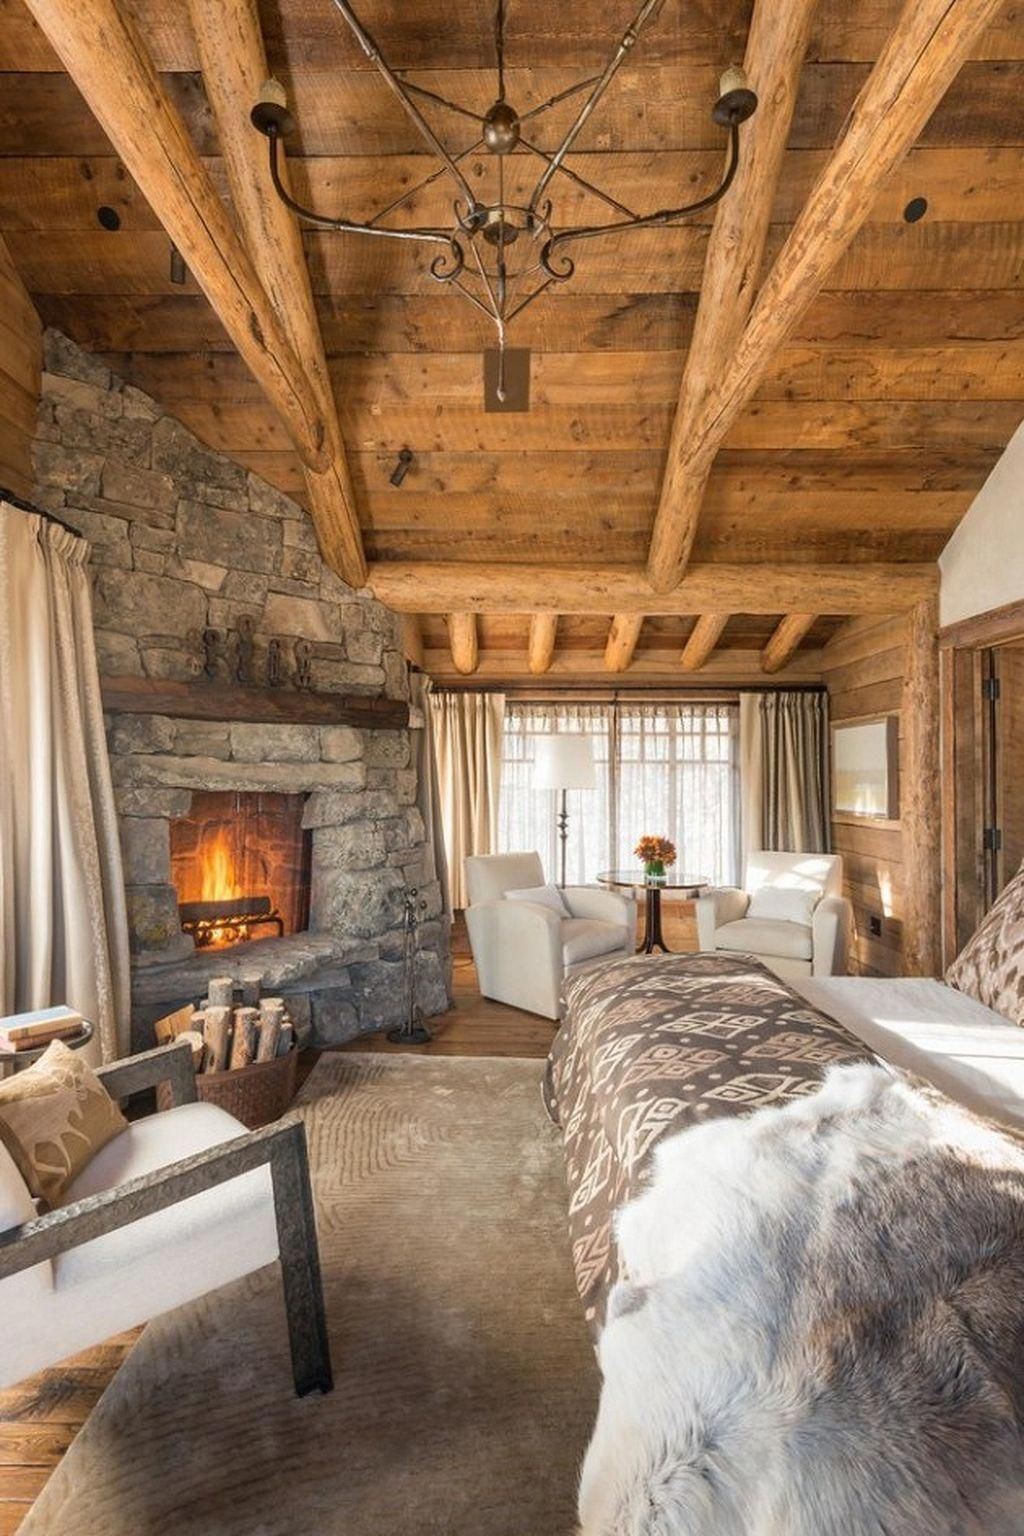 50 Inspiring Bedroom Decoration Ideas For Winter That Will Make You Warm images